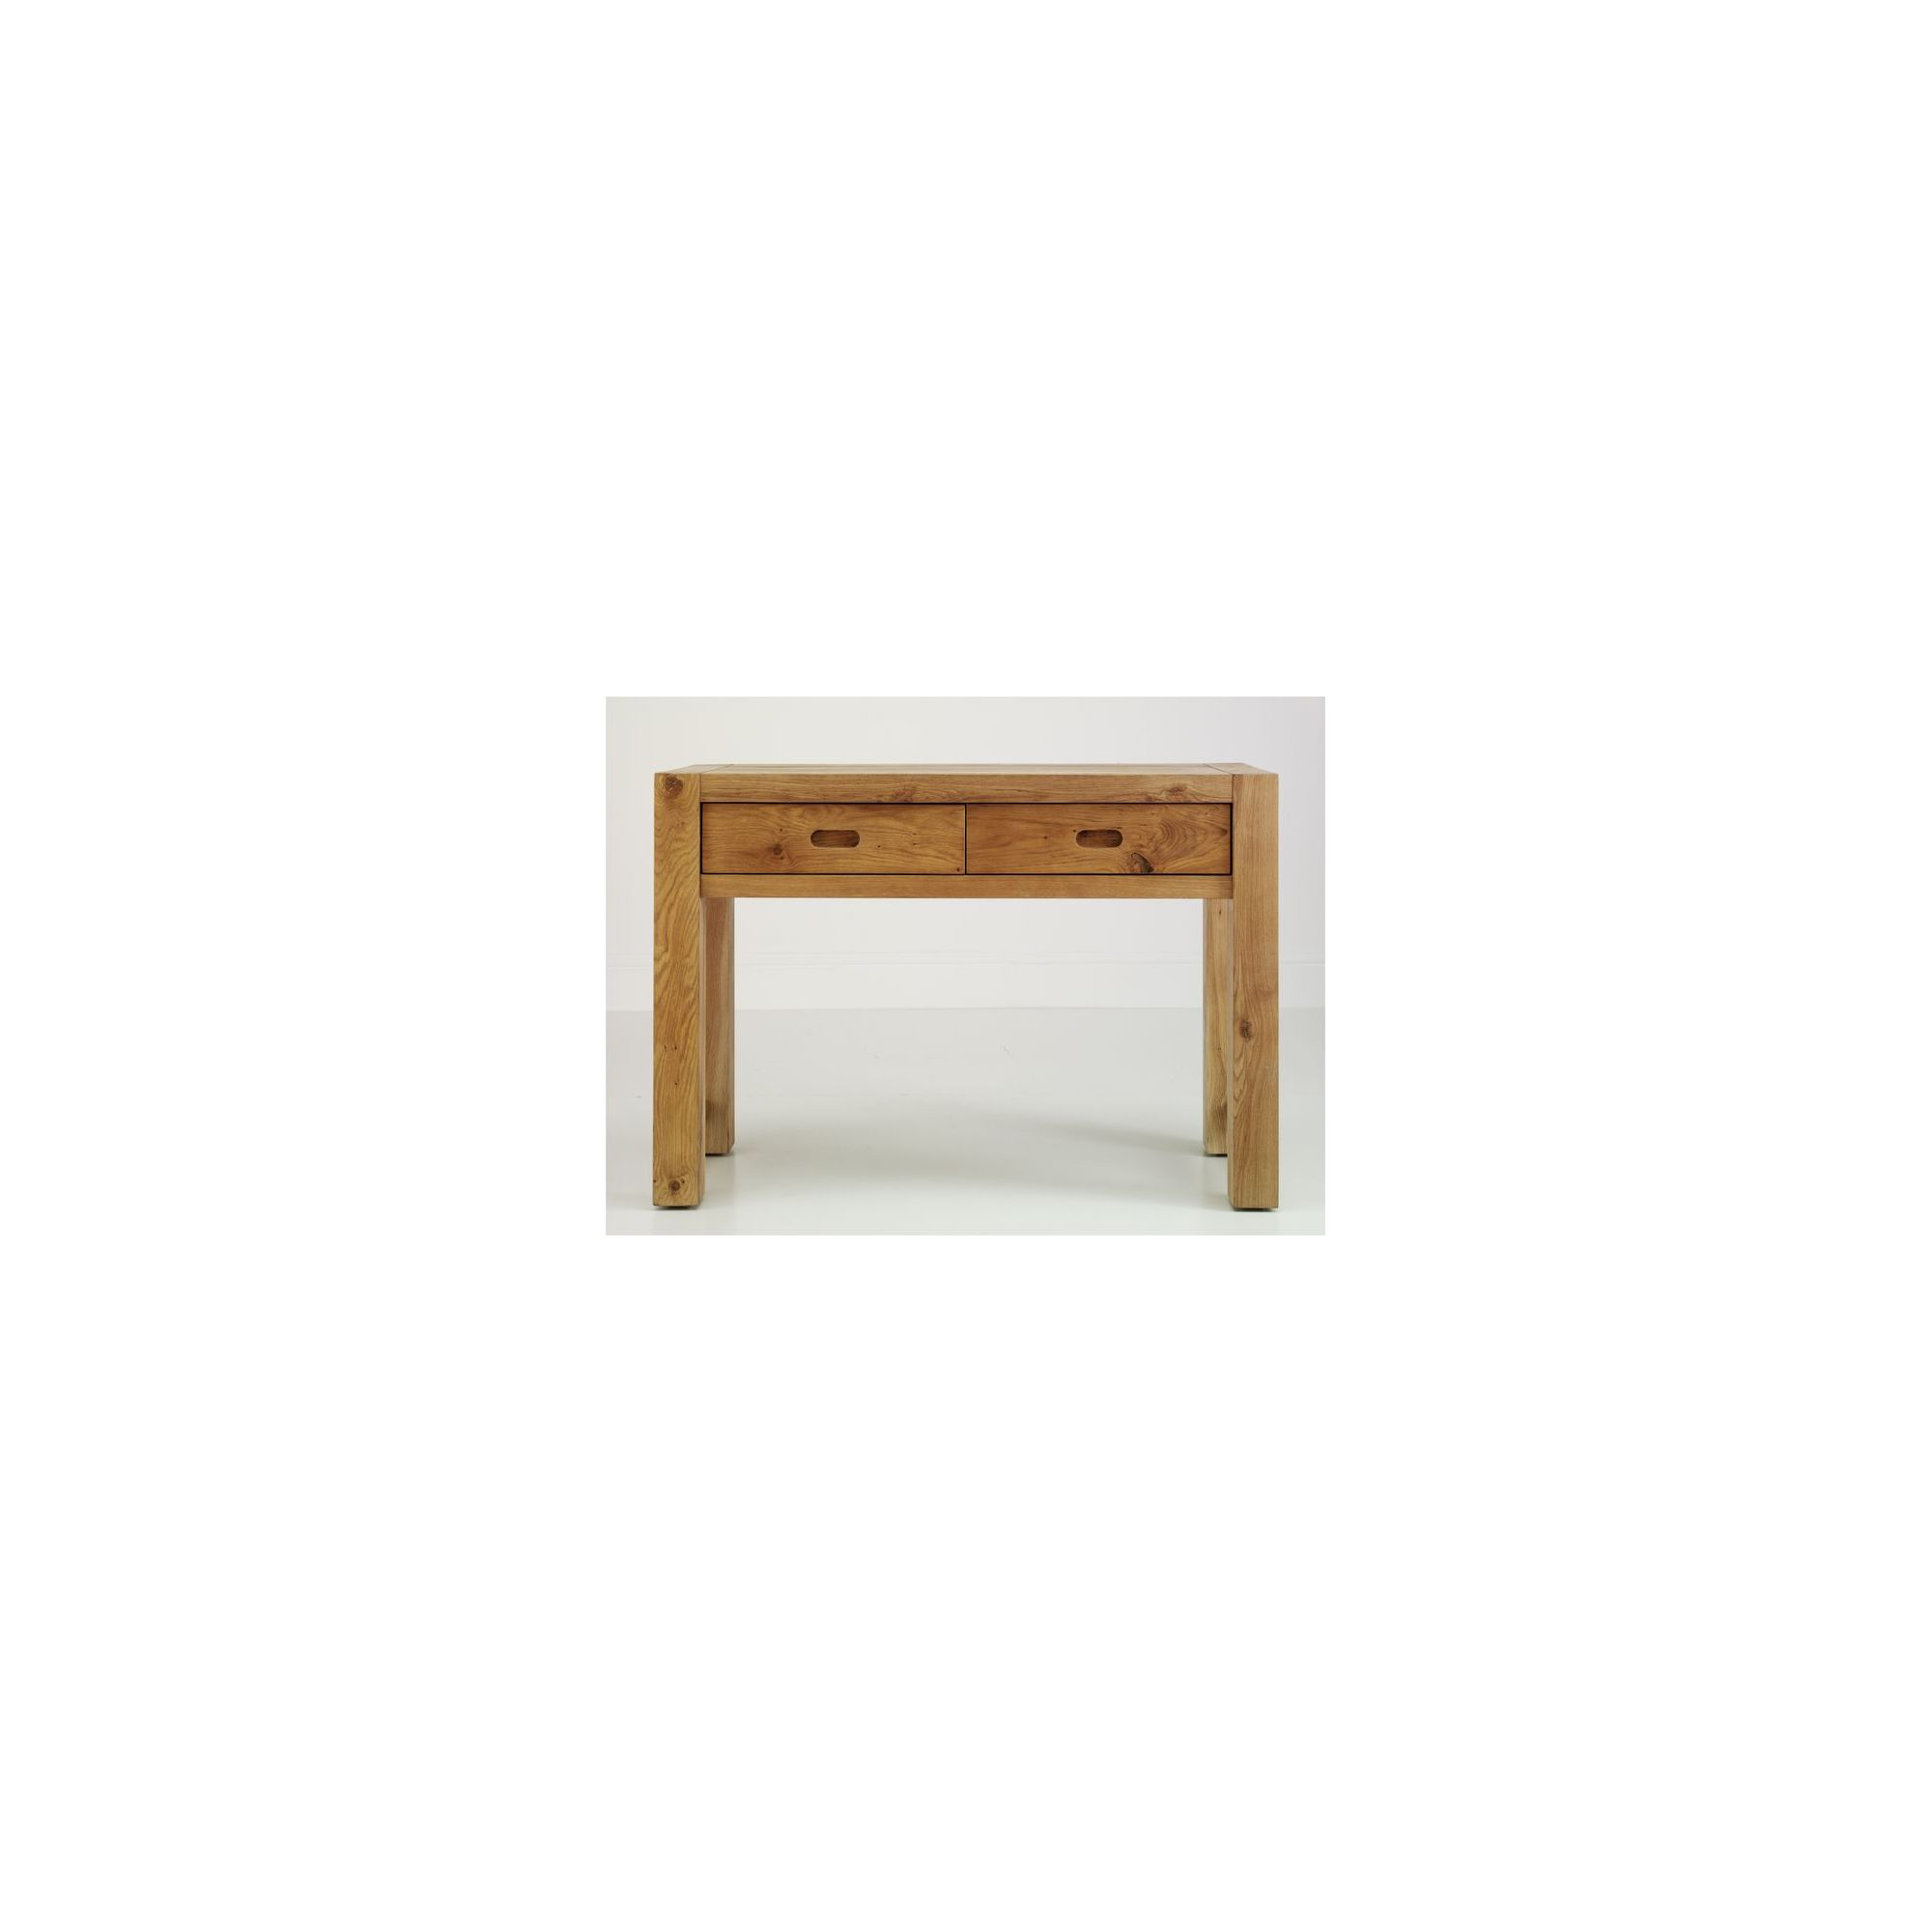 Originals Talin Dining Console Table at Tescos Direct